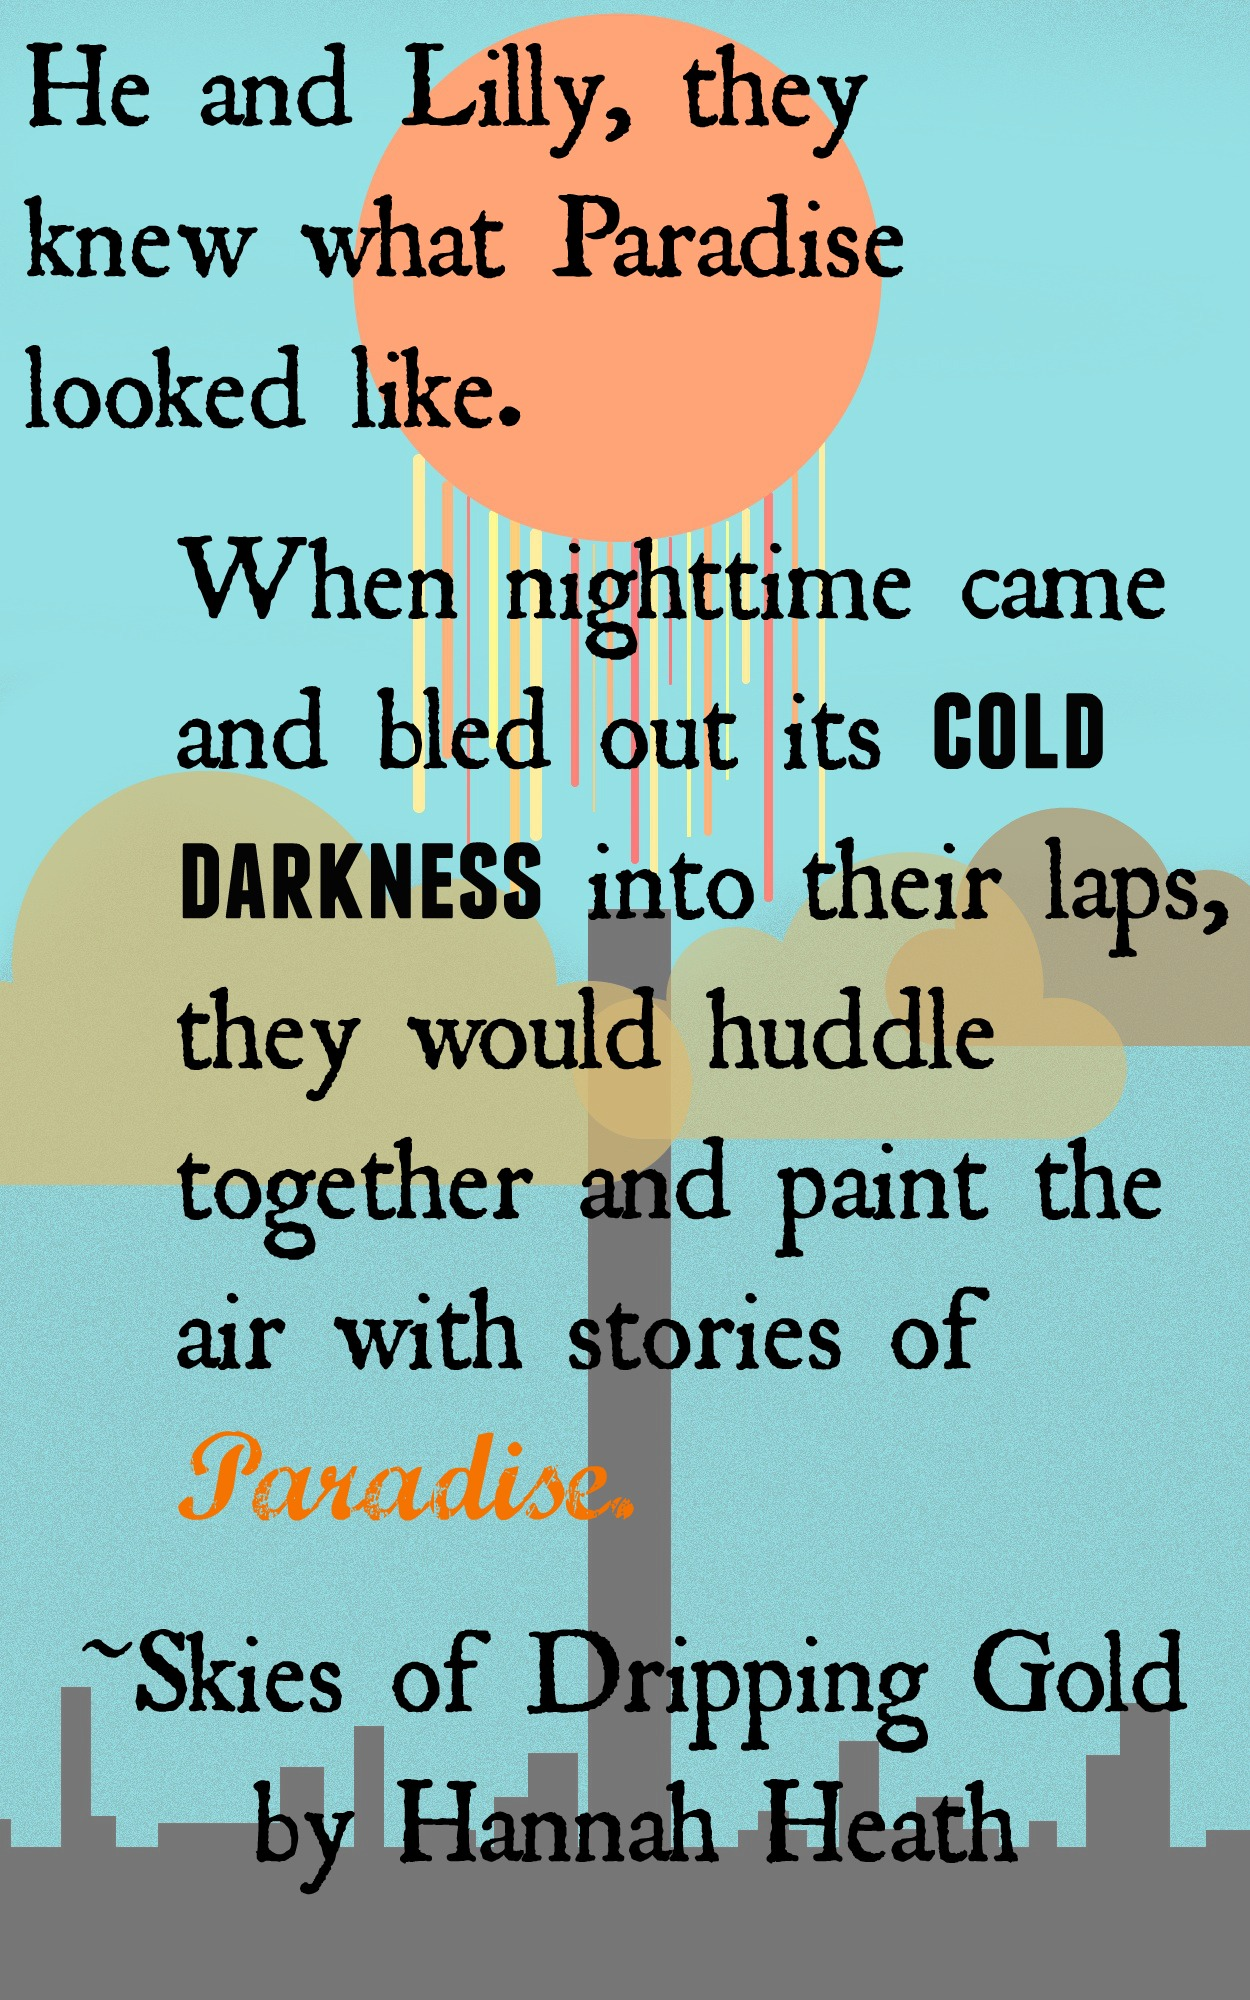 Painting Stories of Paradise Quote.jpg